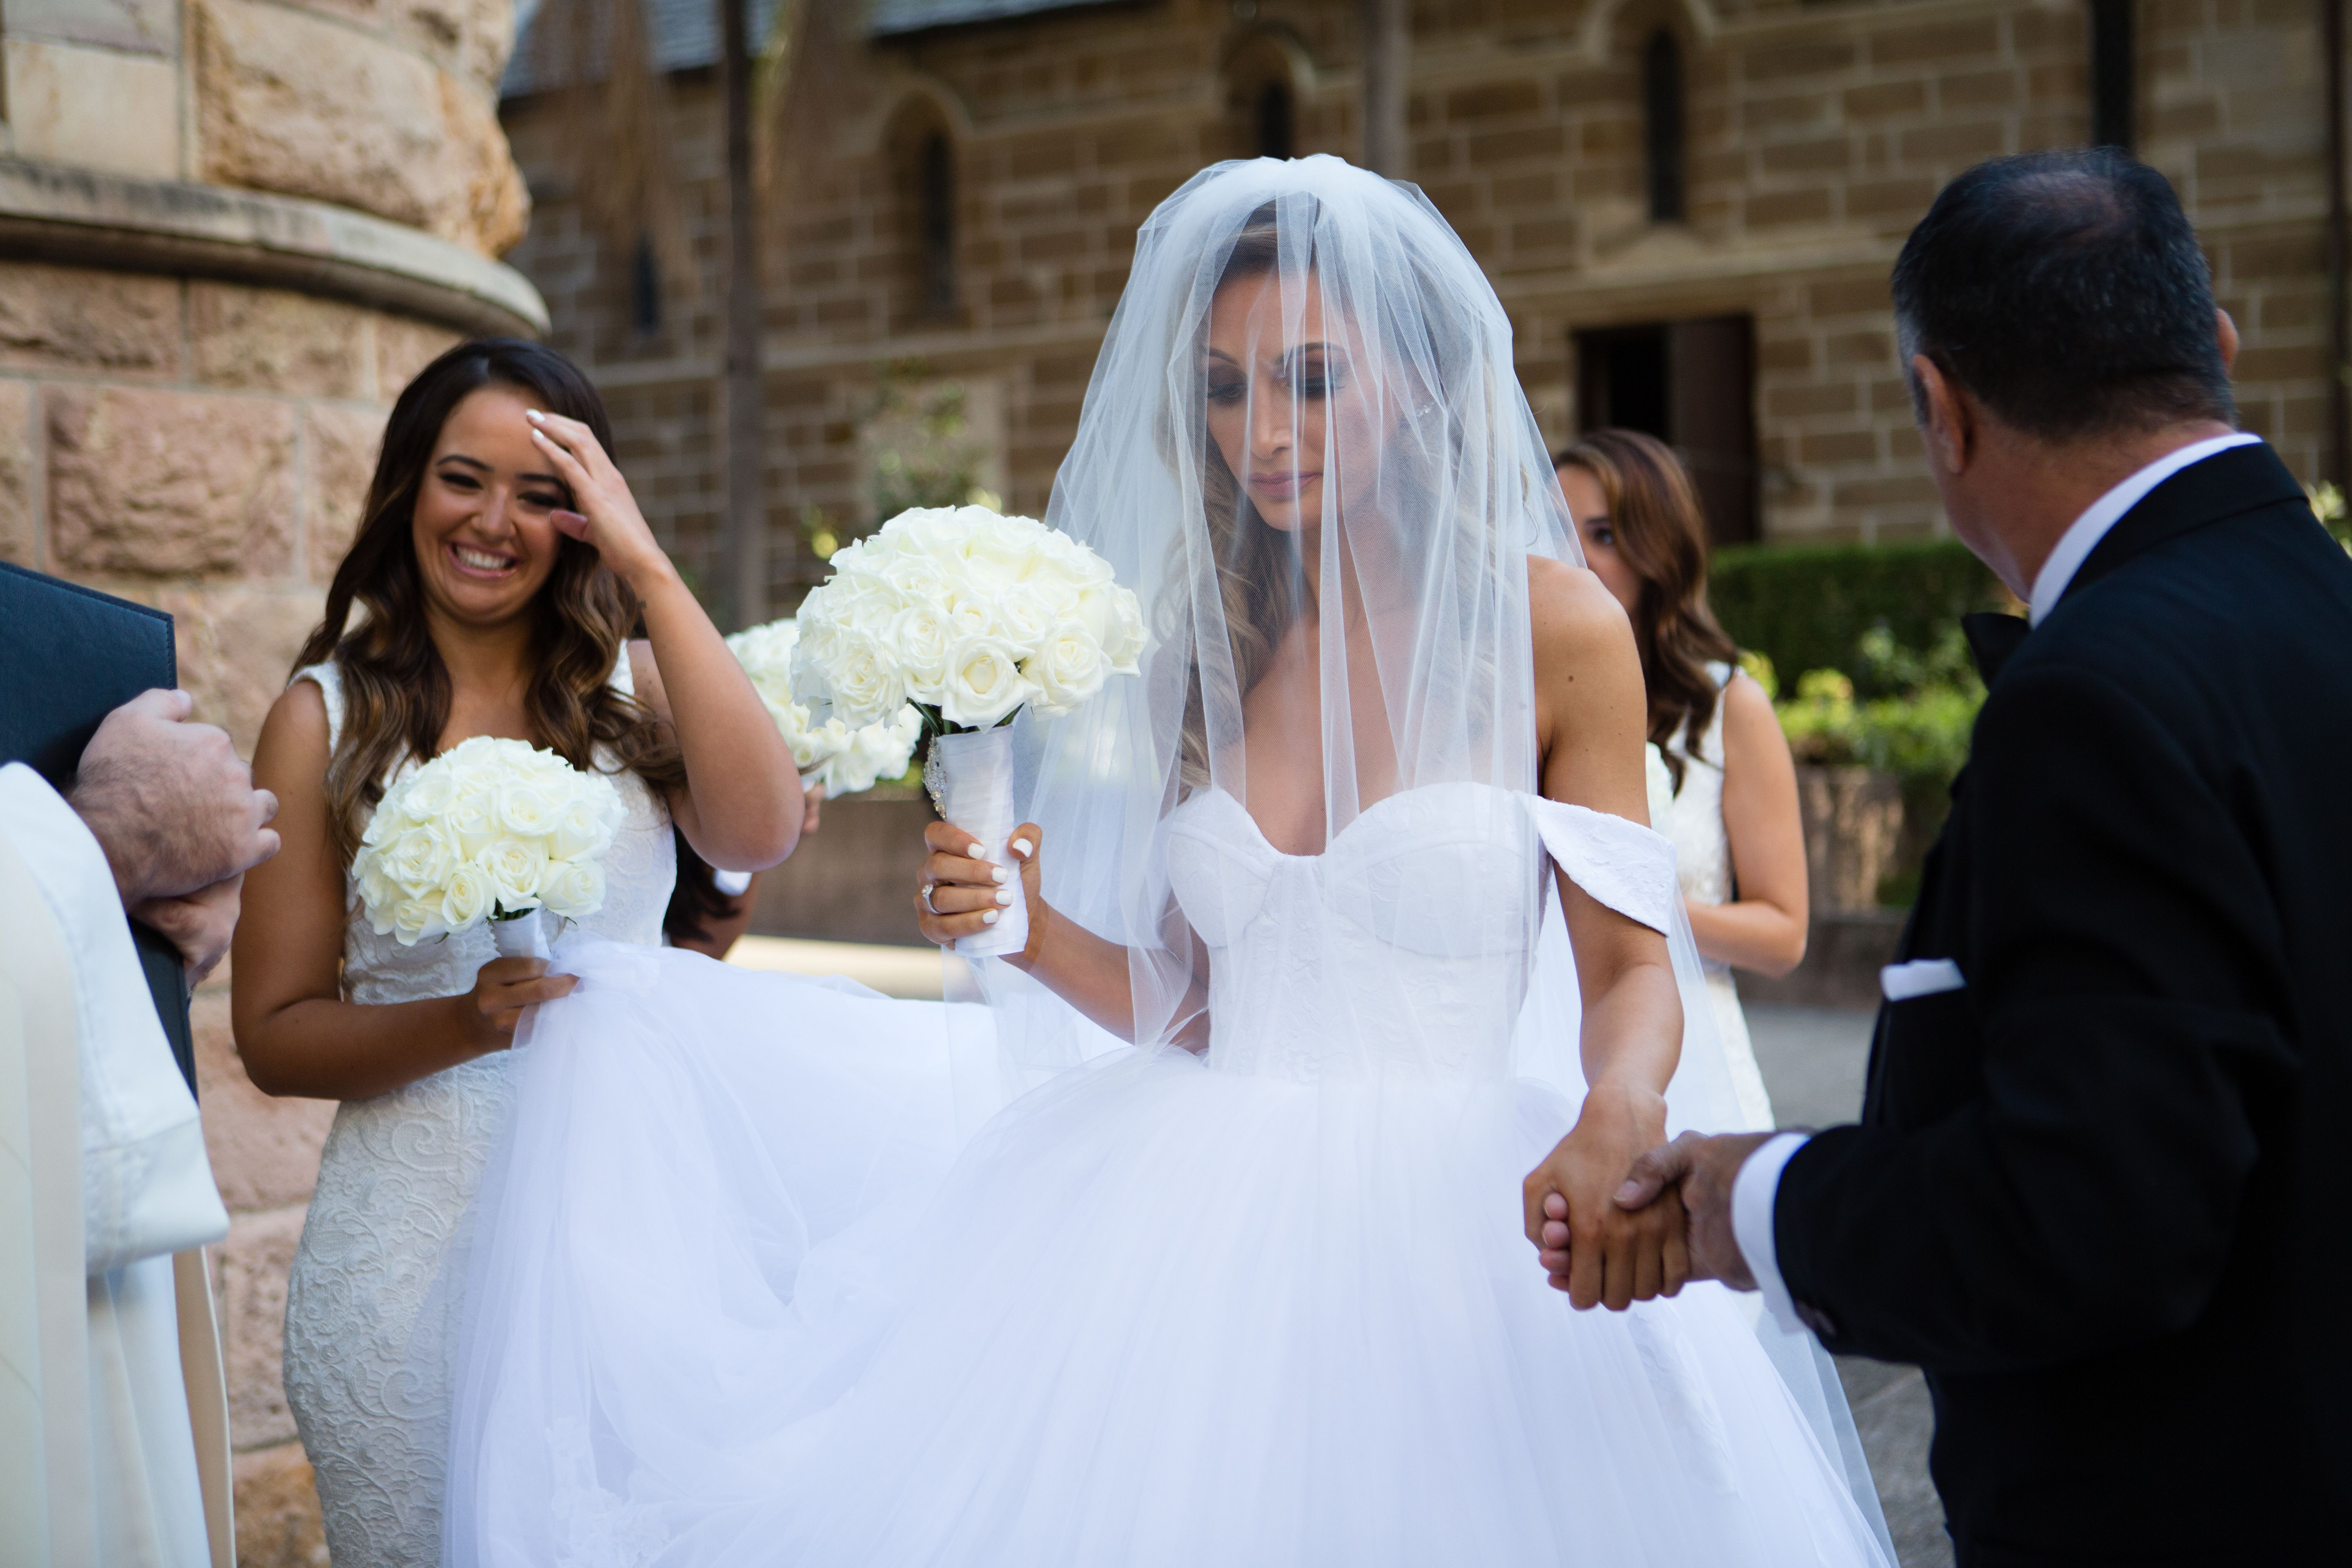 Inspiring post by Bridestory.com, everyone should read about An Exquisite White and Gold Wedding in Australia on http://www.bridestory.com/blog/an-exquisite-white-and-gold-wedding-in-australia